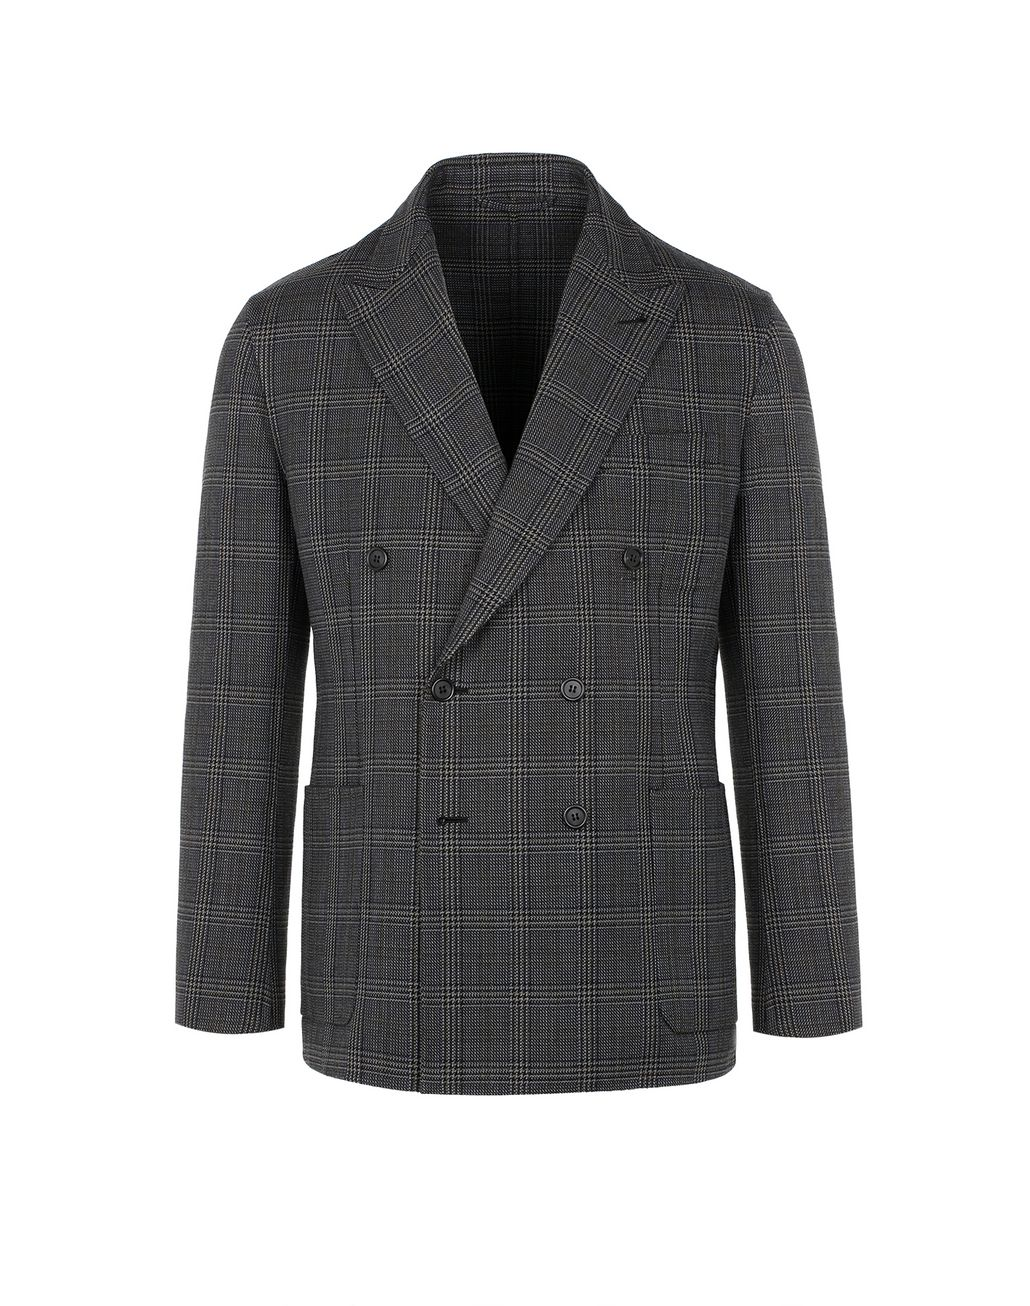 BRIONI Grey Double-Breasted Jacket Suits & Jackets Man f